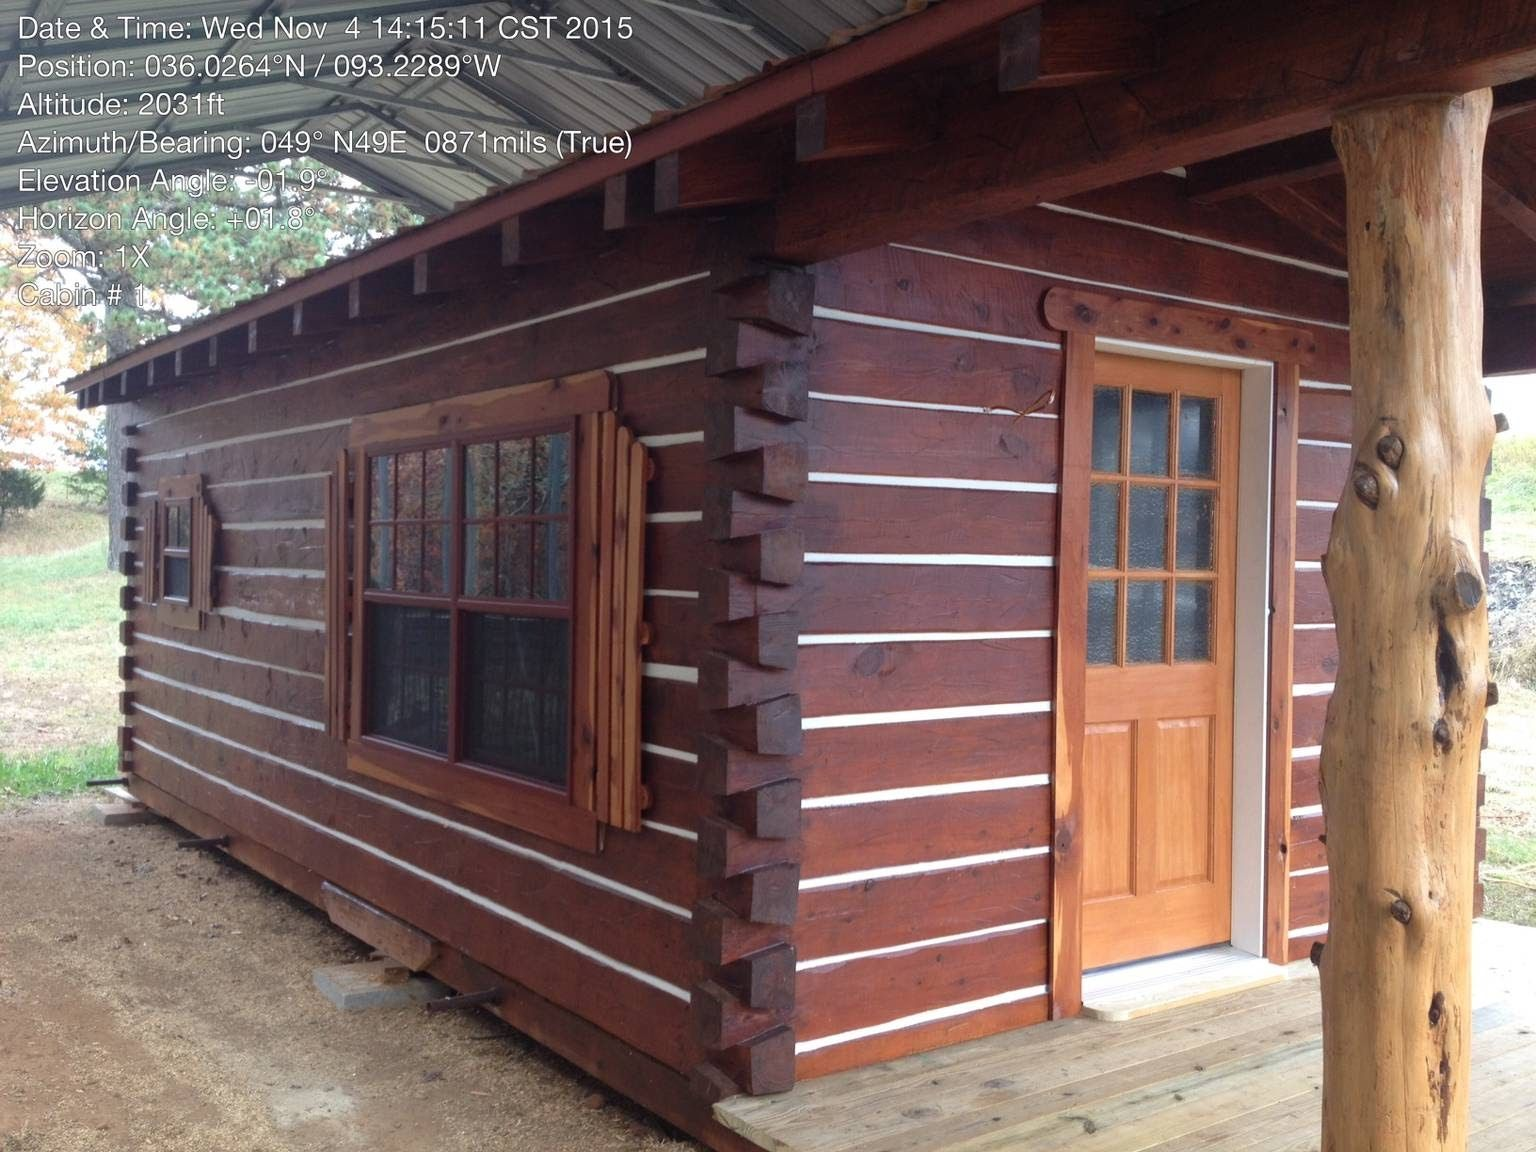 12ft X 30ft Portable Log Cabin Log Cabins For Sale Cabins For Sale Tiny Log Cabins